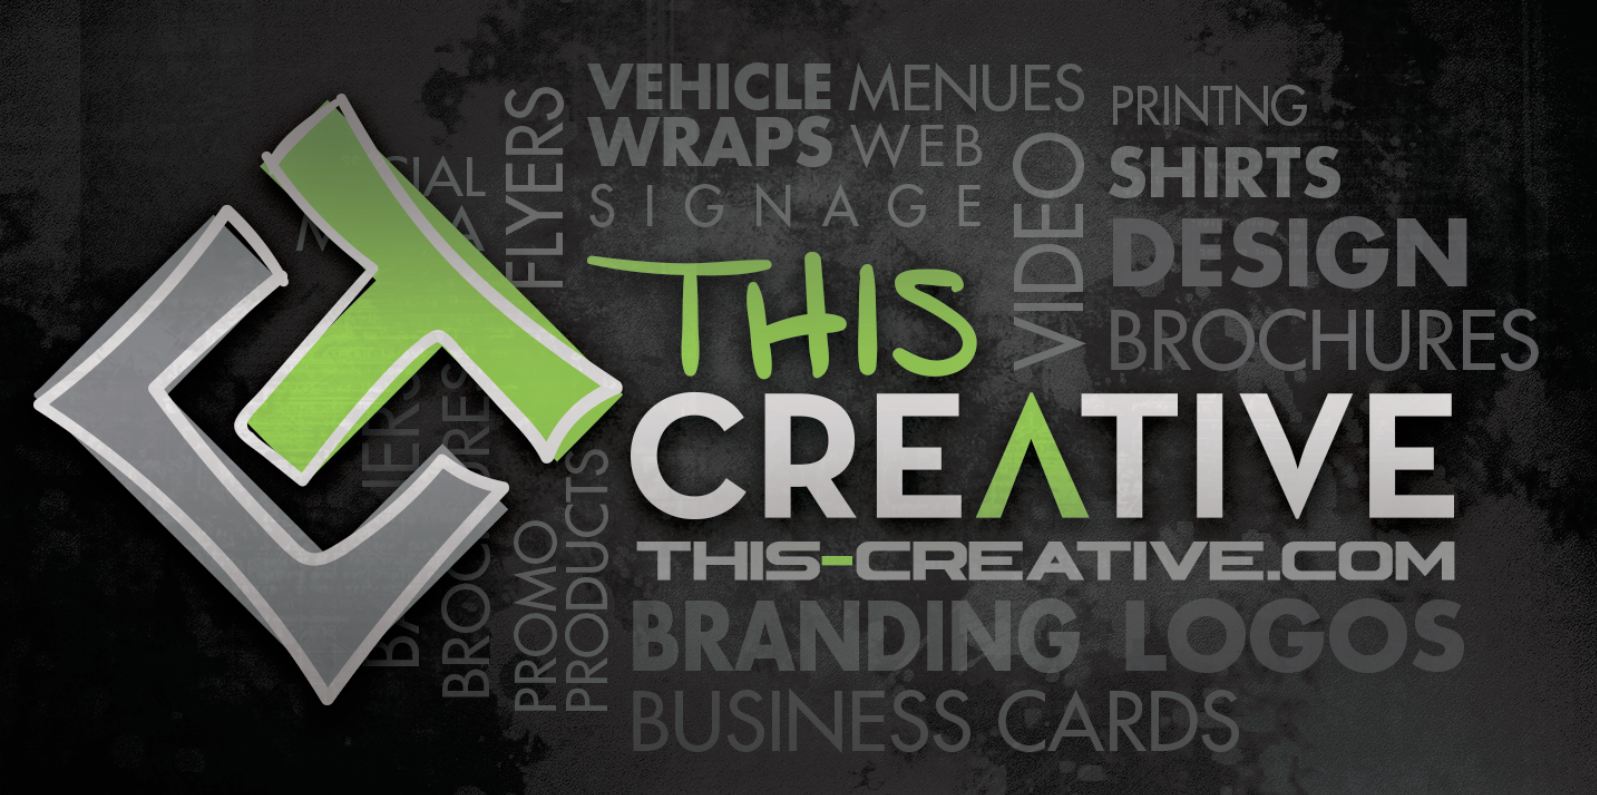 This Creative reviews | Marketing at 6261 Arc Way - Fort Myers FL